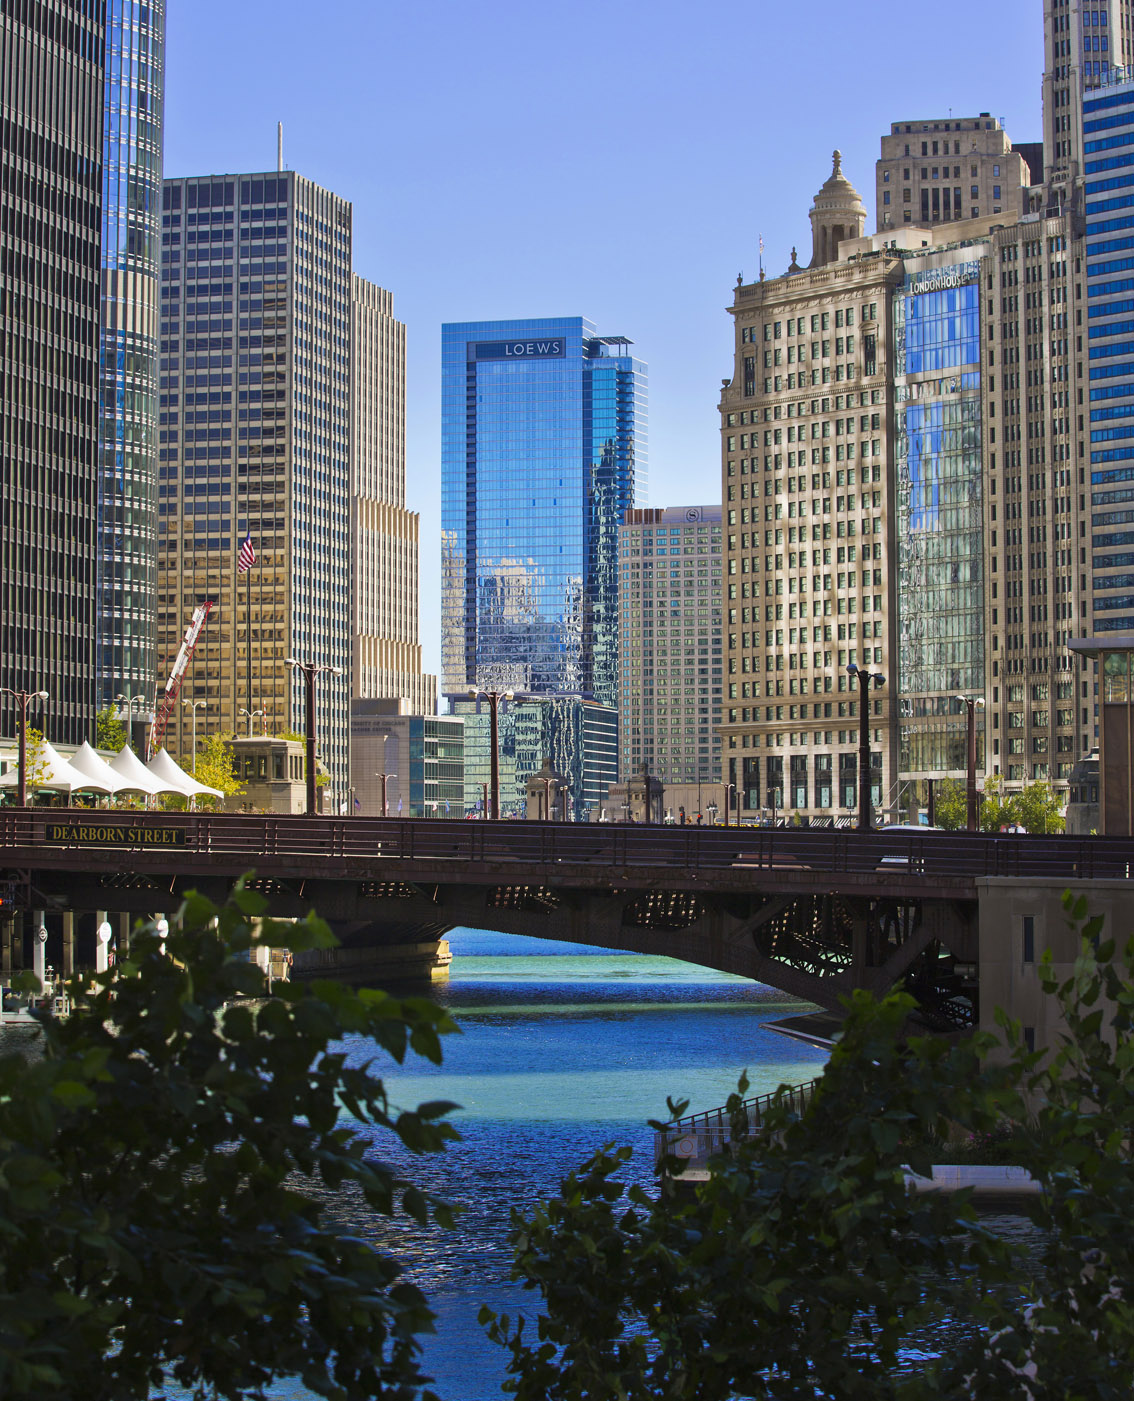 Loews Hotel Chicago, River Chicago, City Architecture, Chicago, Skyscrapers, Old and New Chicago, Chicago Clock, Stars and stripes, Gary Edwards Travel Photographs, 9,40am